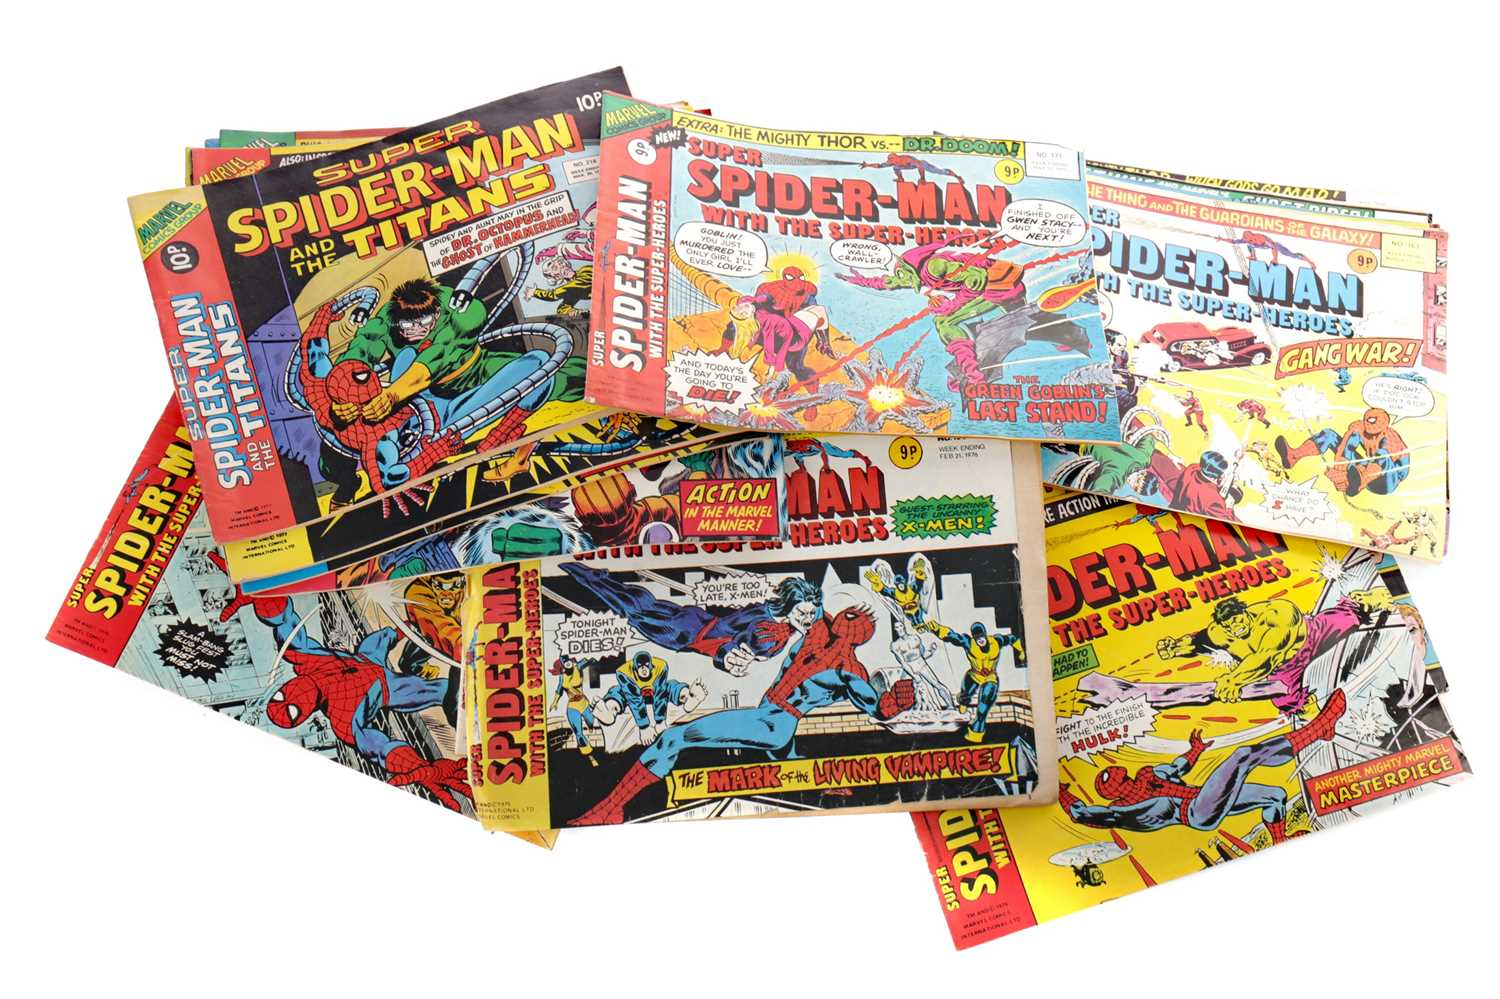 Lot 1662 - A COLLECTION OF VINTAGE COMIC BOOKS INCLUDING SPIDER MAN